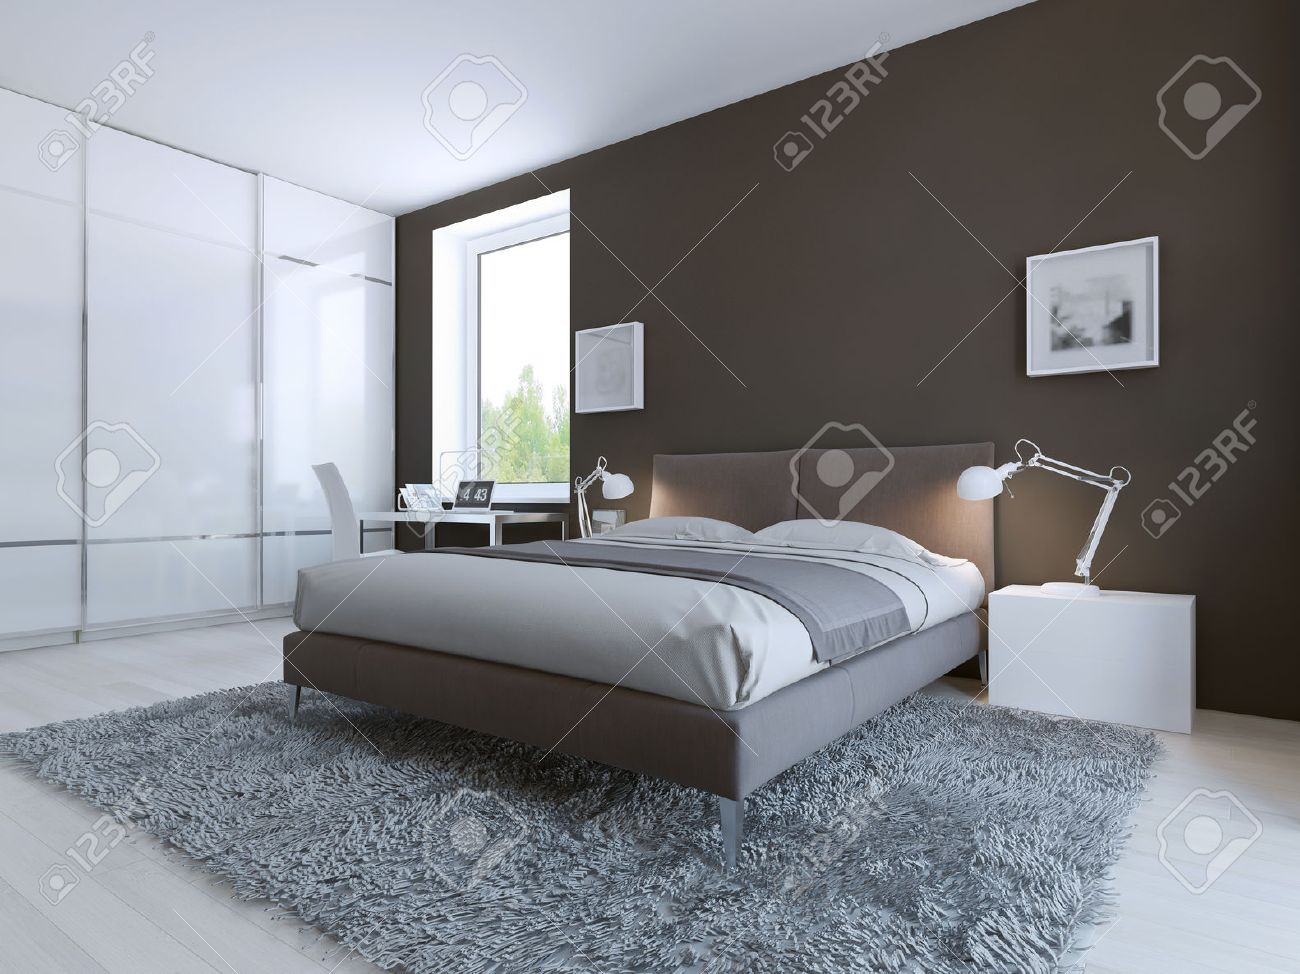 Schlafzimmer Bodenbelag Stock Photo